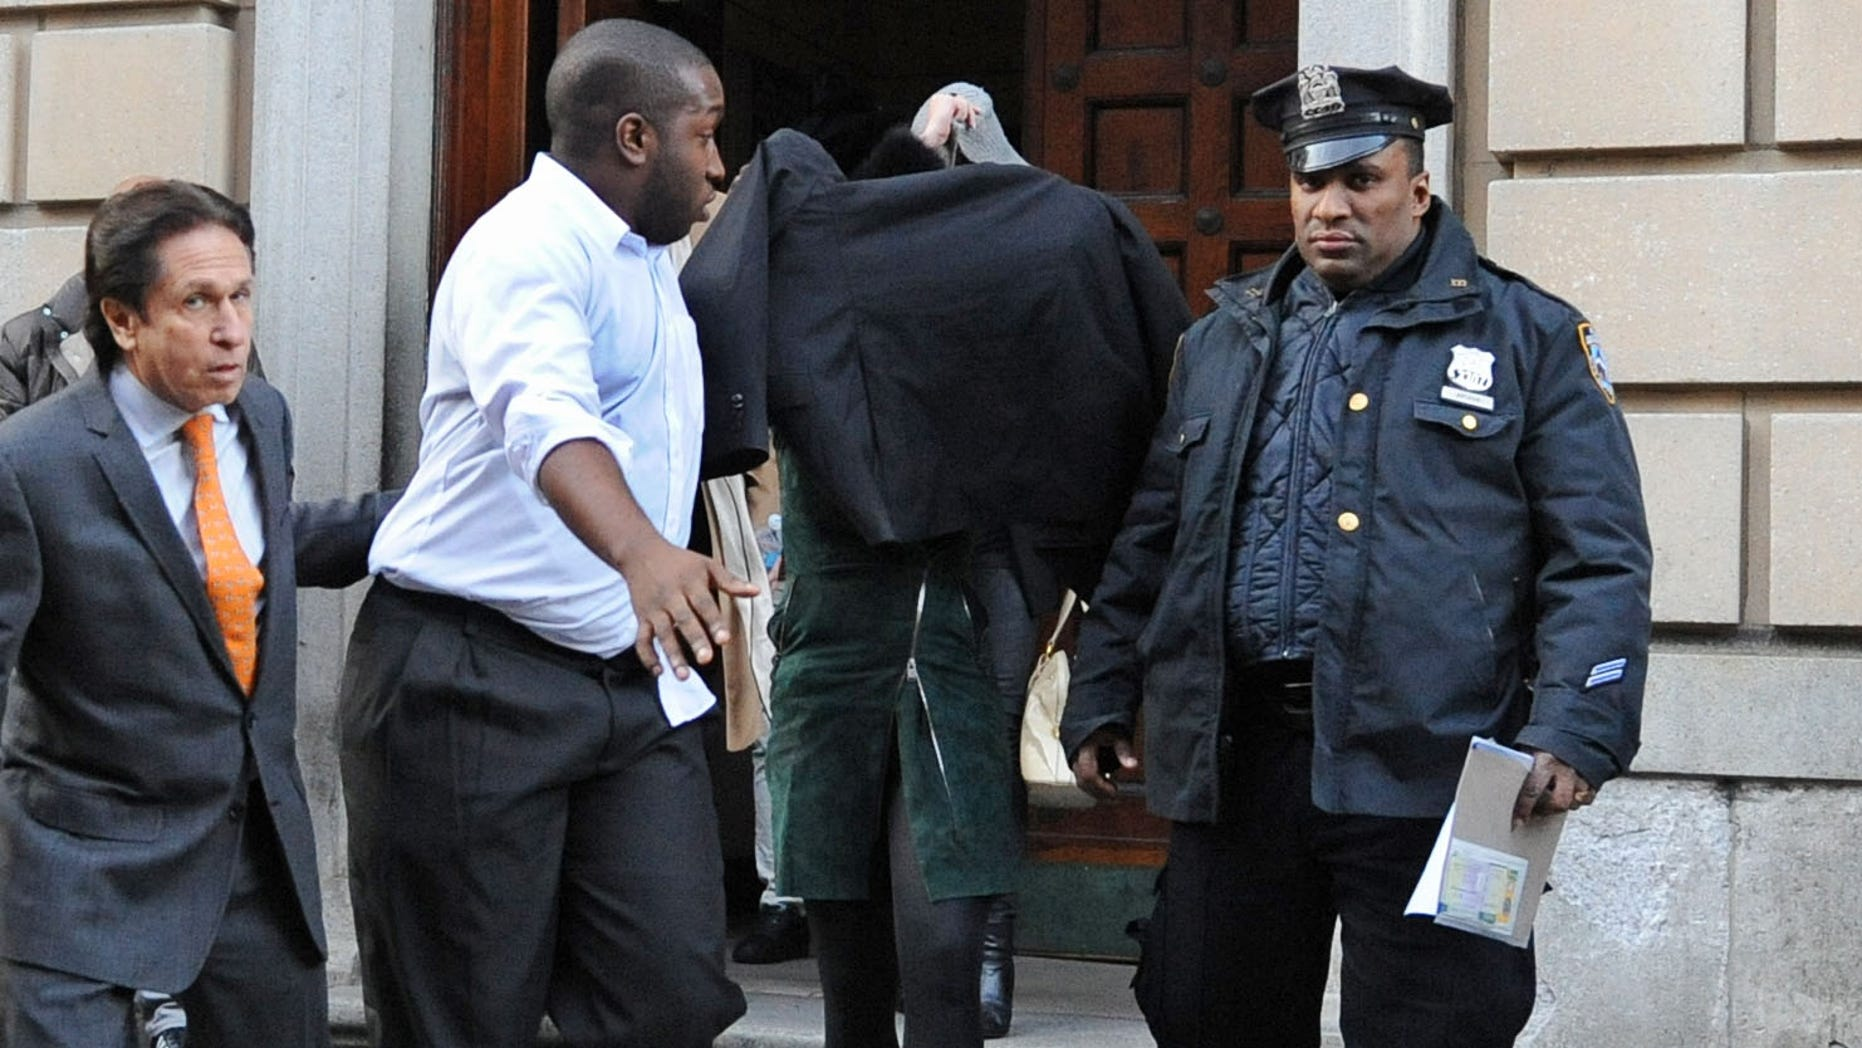 Nov. 29, 2012: Lindsay Lohan, second from right, is escorted from the 10th Precinct police station, with her face shielded in New York after being charged for allegedly striking a woman at a nightclub.